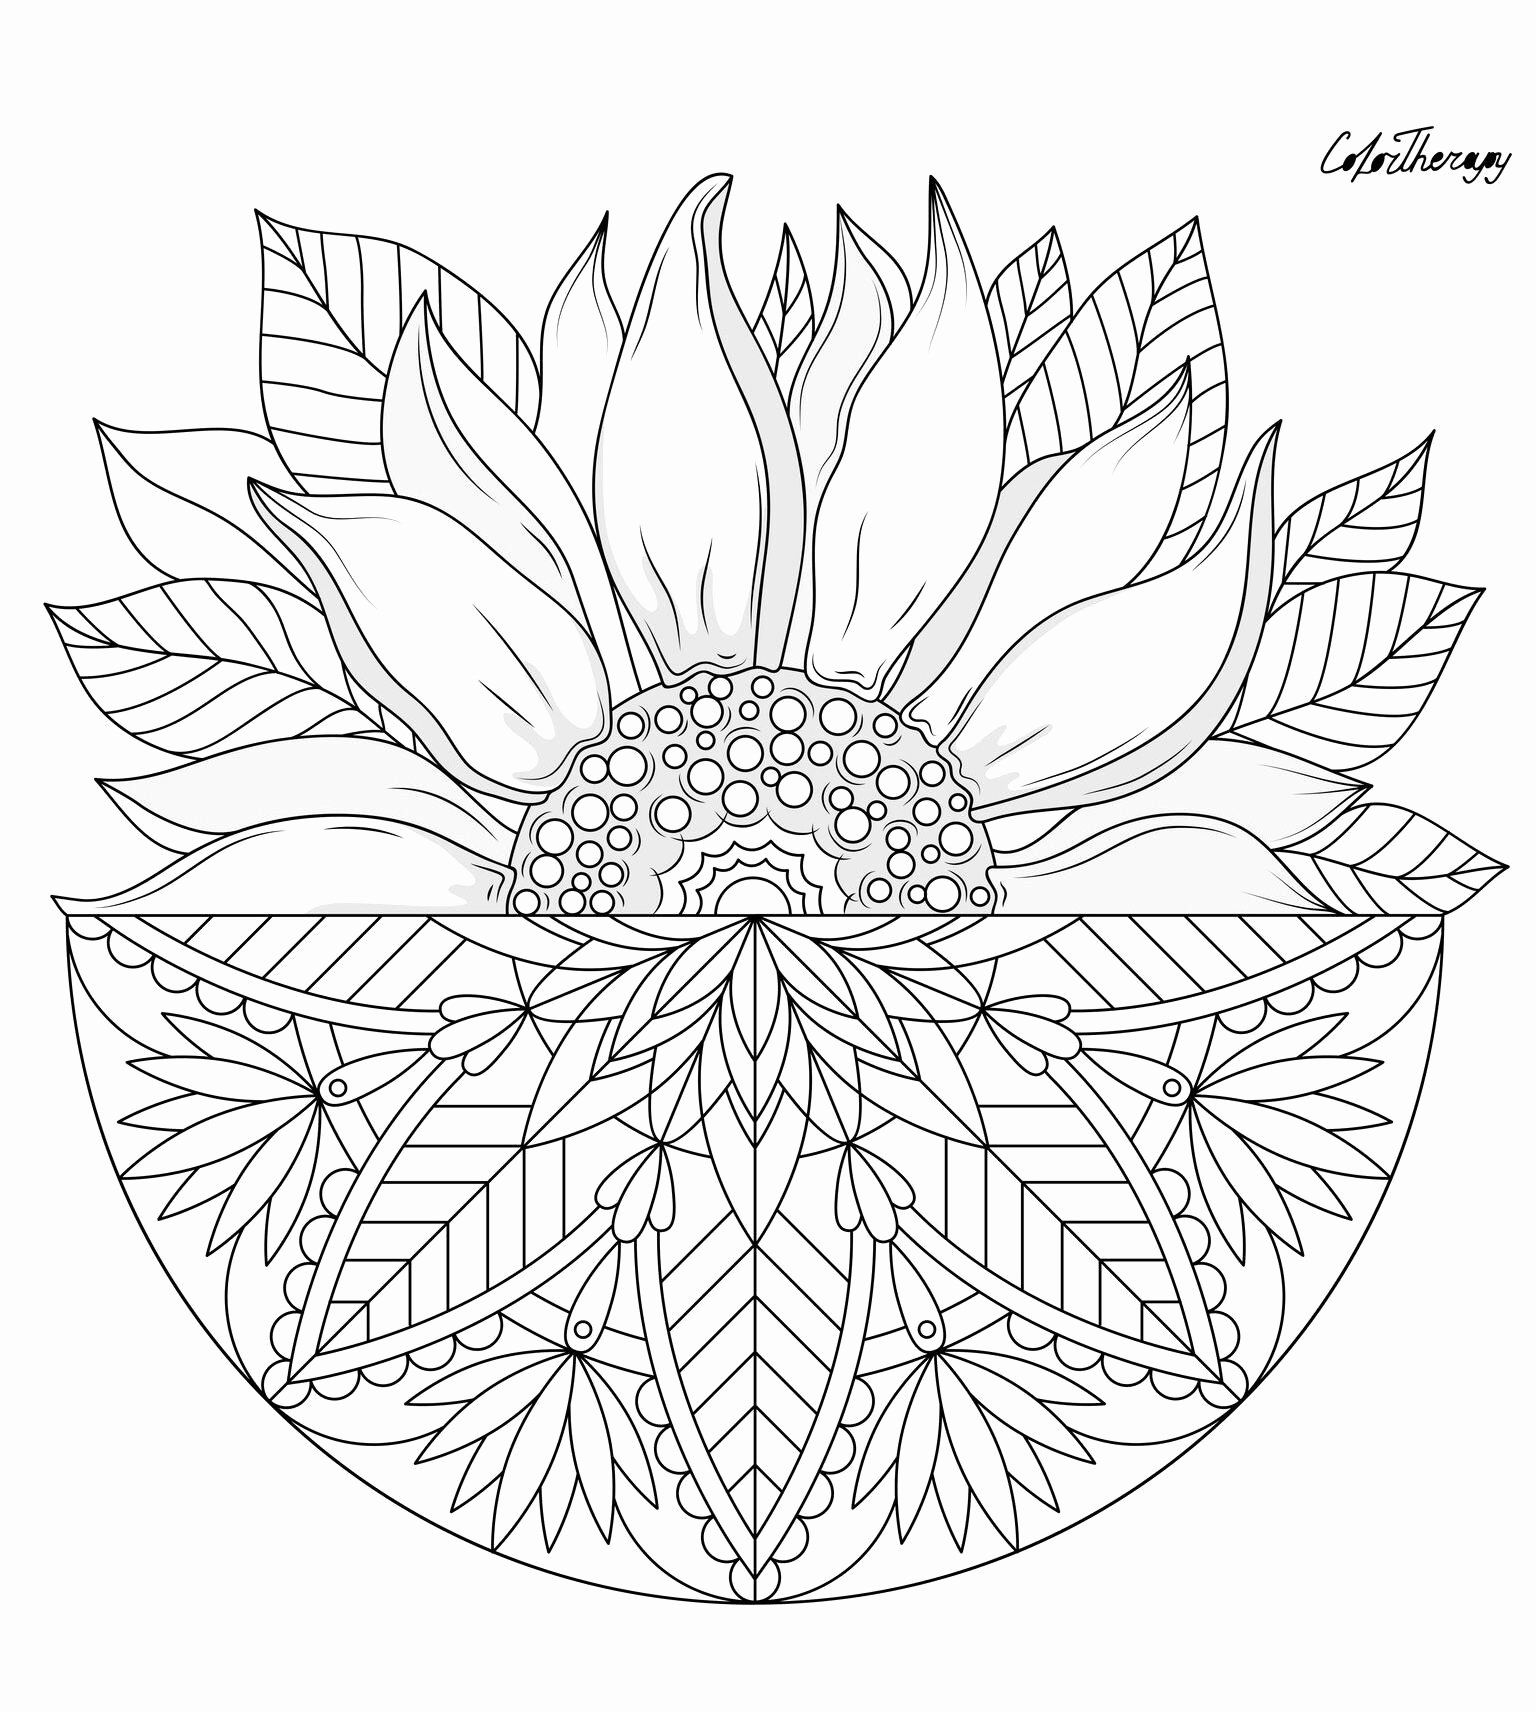 Design Originals Coloring Lovely Pin By Color Therapy App On Gift The Day Gotd Sunflower Coloring Pages Coloring Book Art Flower Coloring Pages